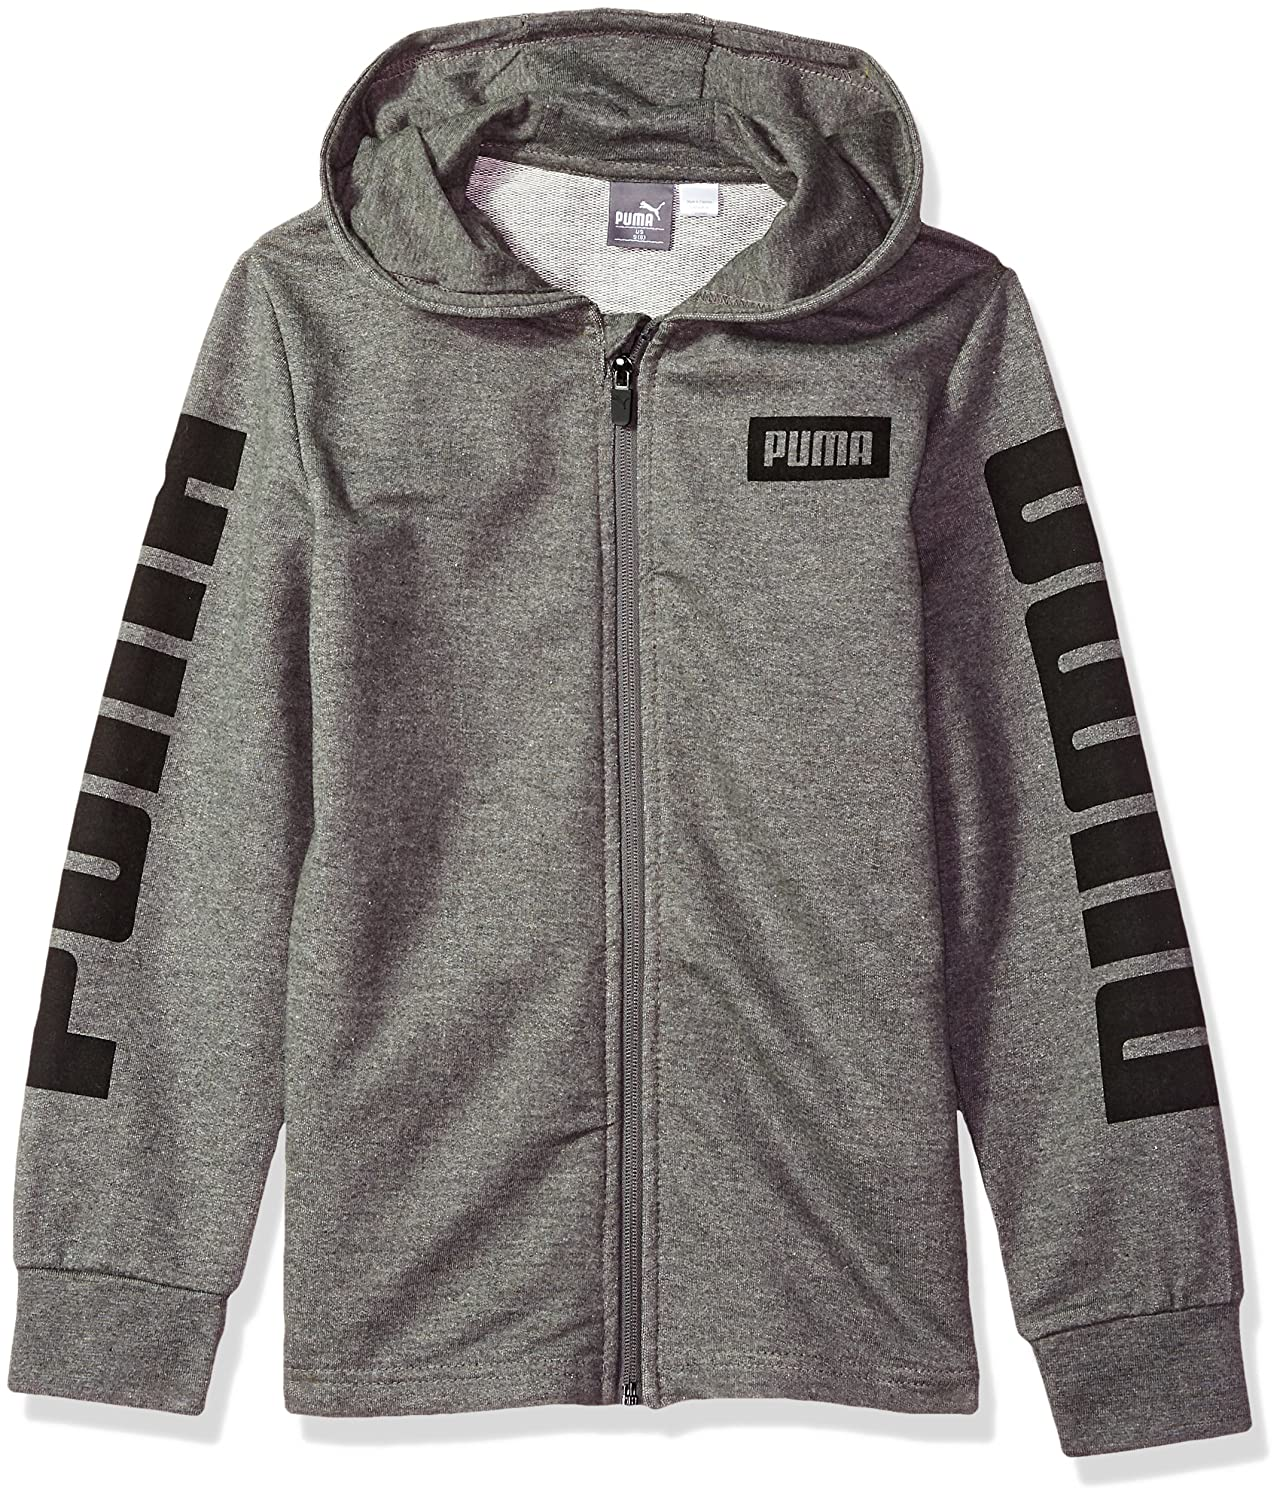 PUMA Boys' Rebel Full Zip Hoodie